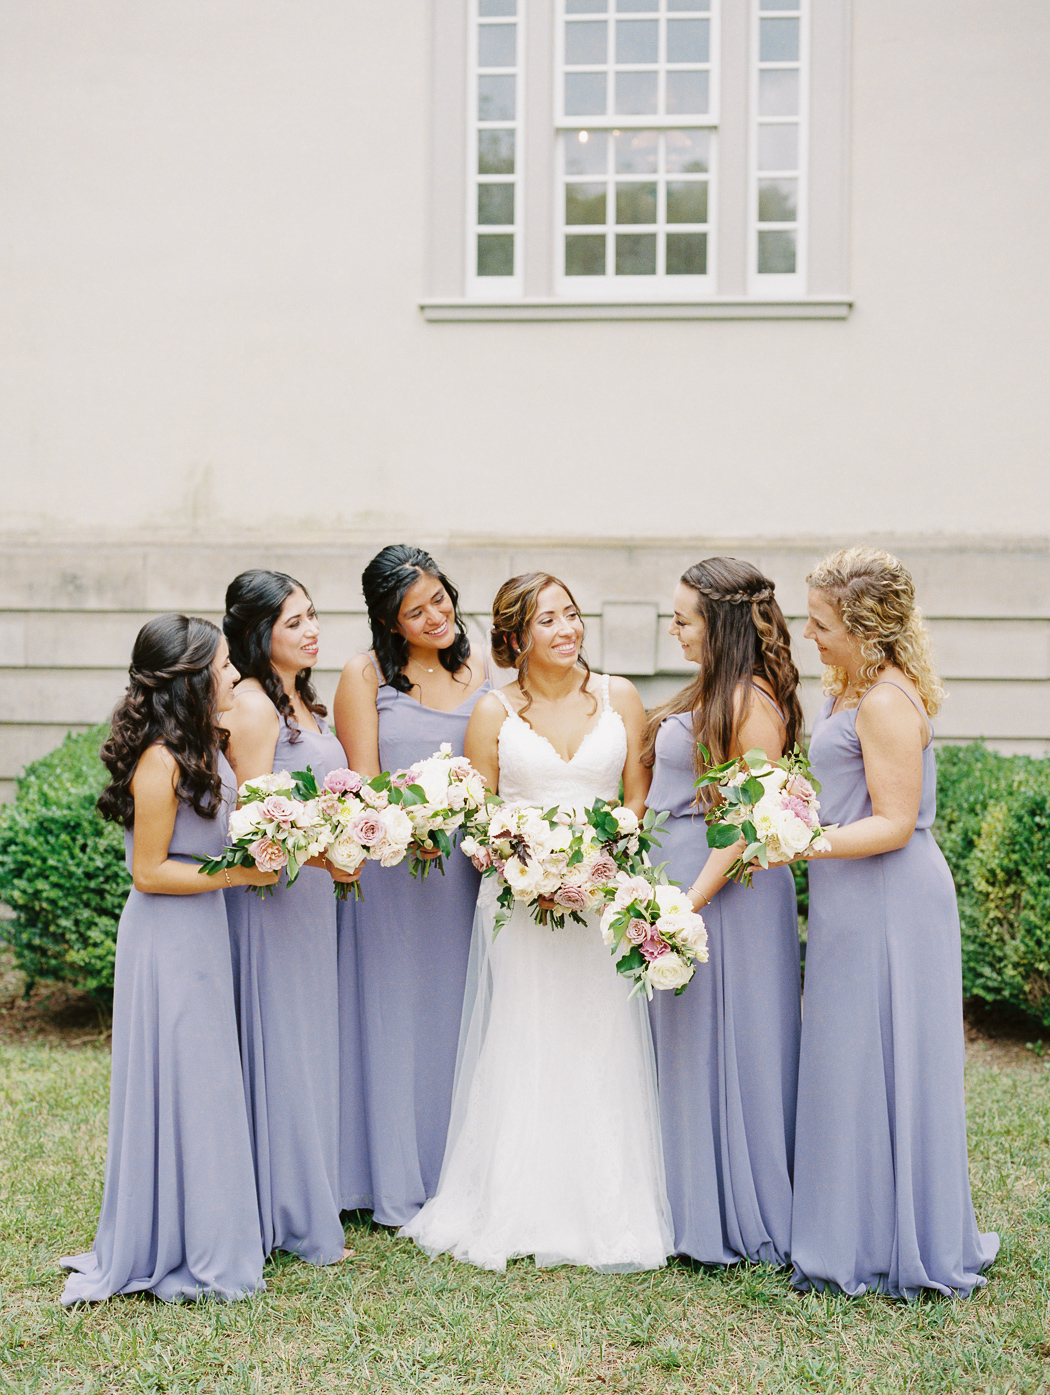 purple-bridesmaids-dresses-great-marsh-estate-wedding